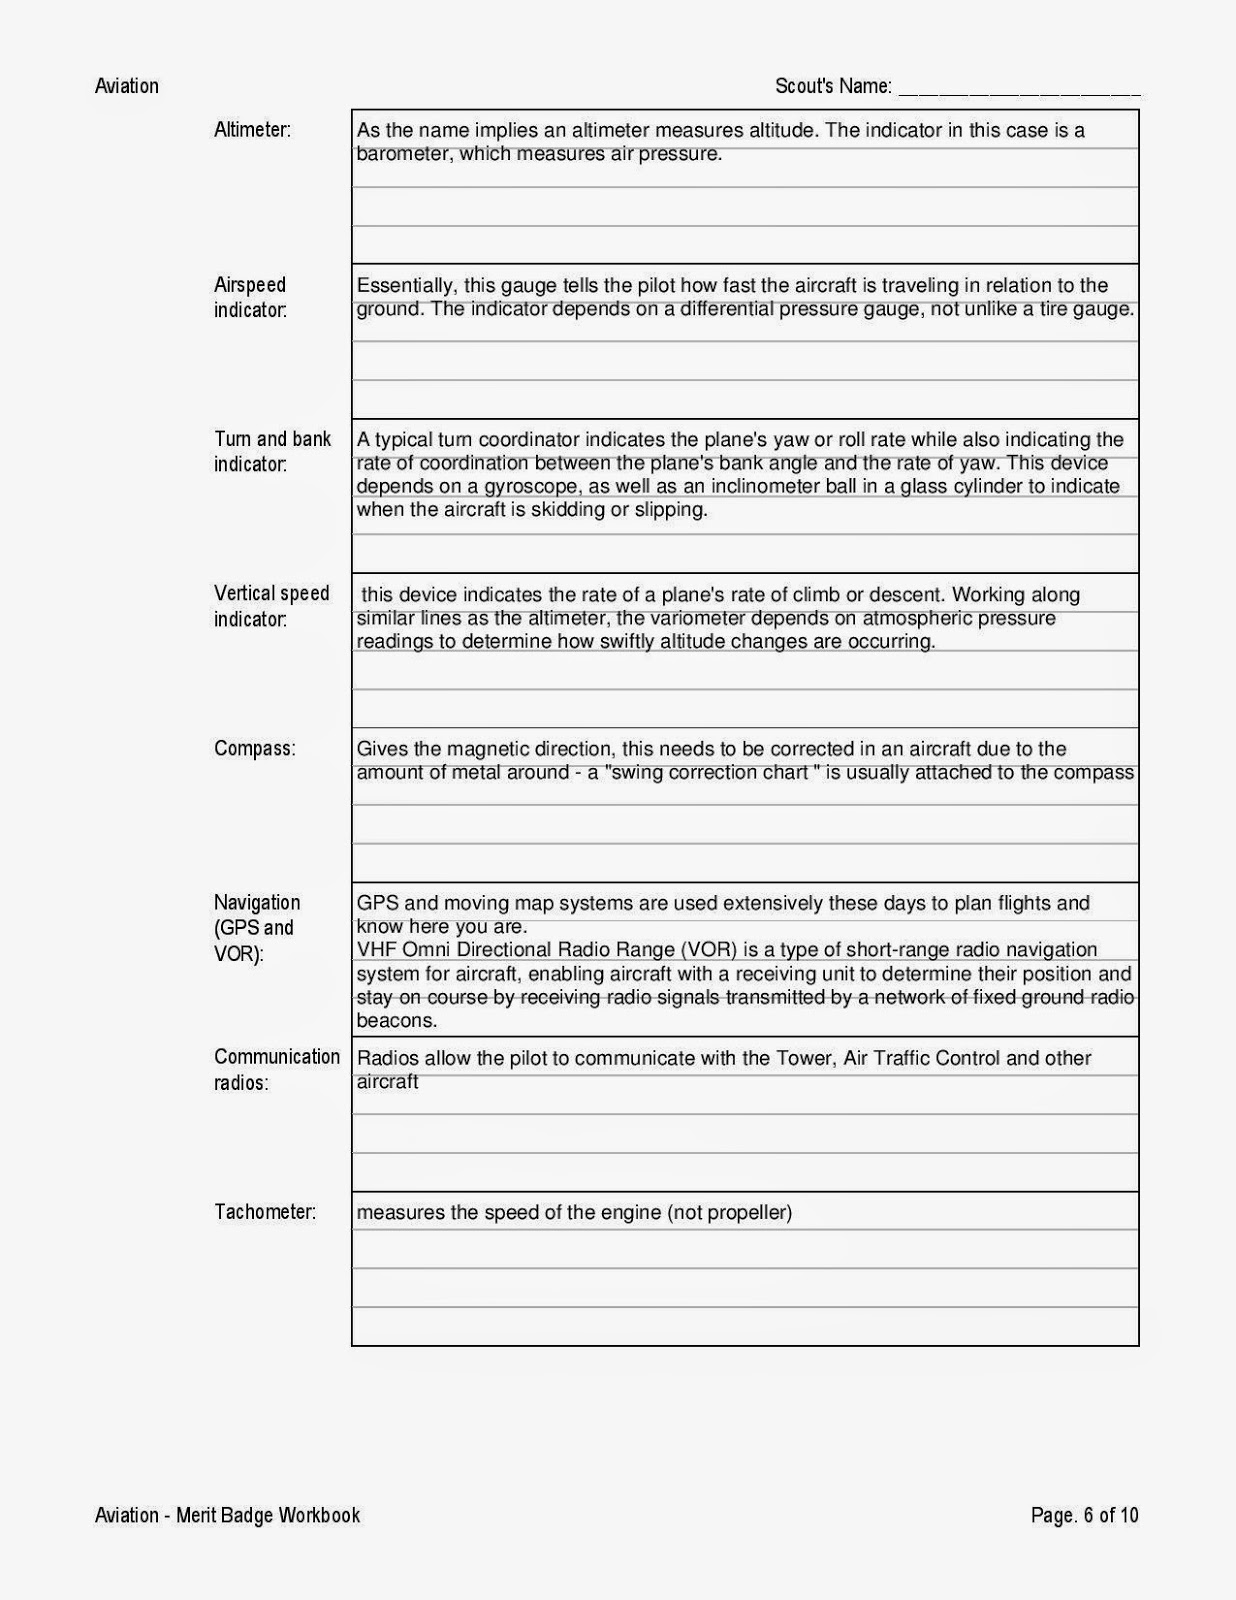 Uncategorized Golf Merit Badge Worksheet boy scout troop 107 greensboro nc aviation merit badge workbook here are some sample answers